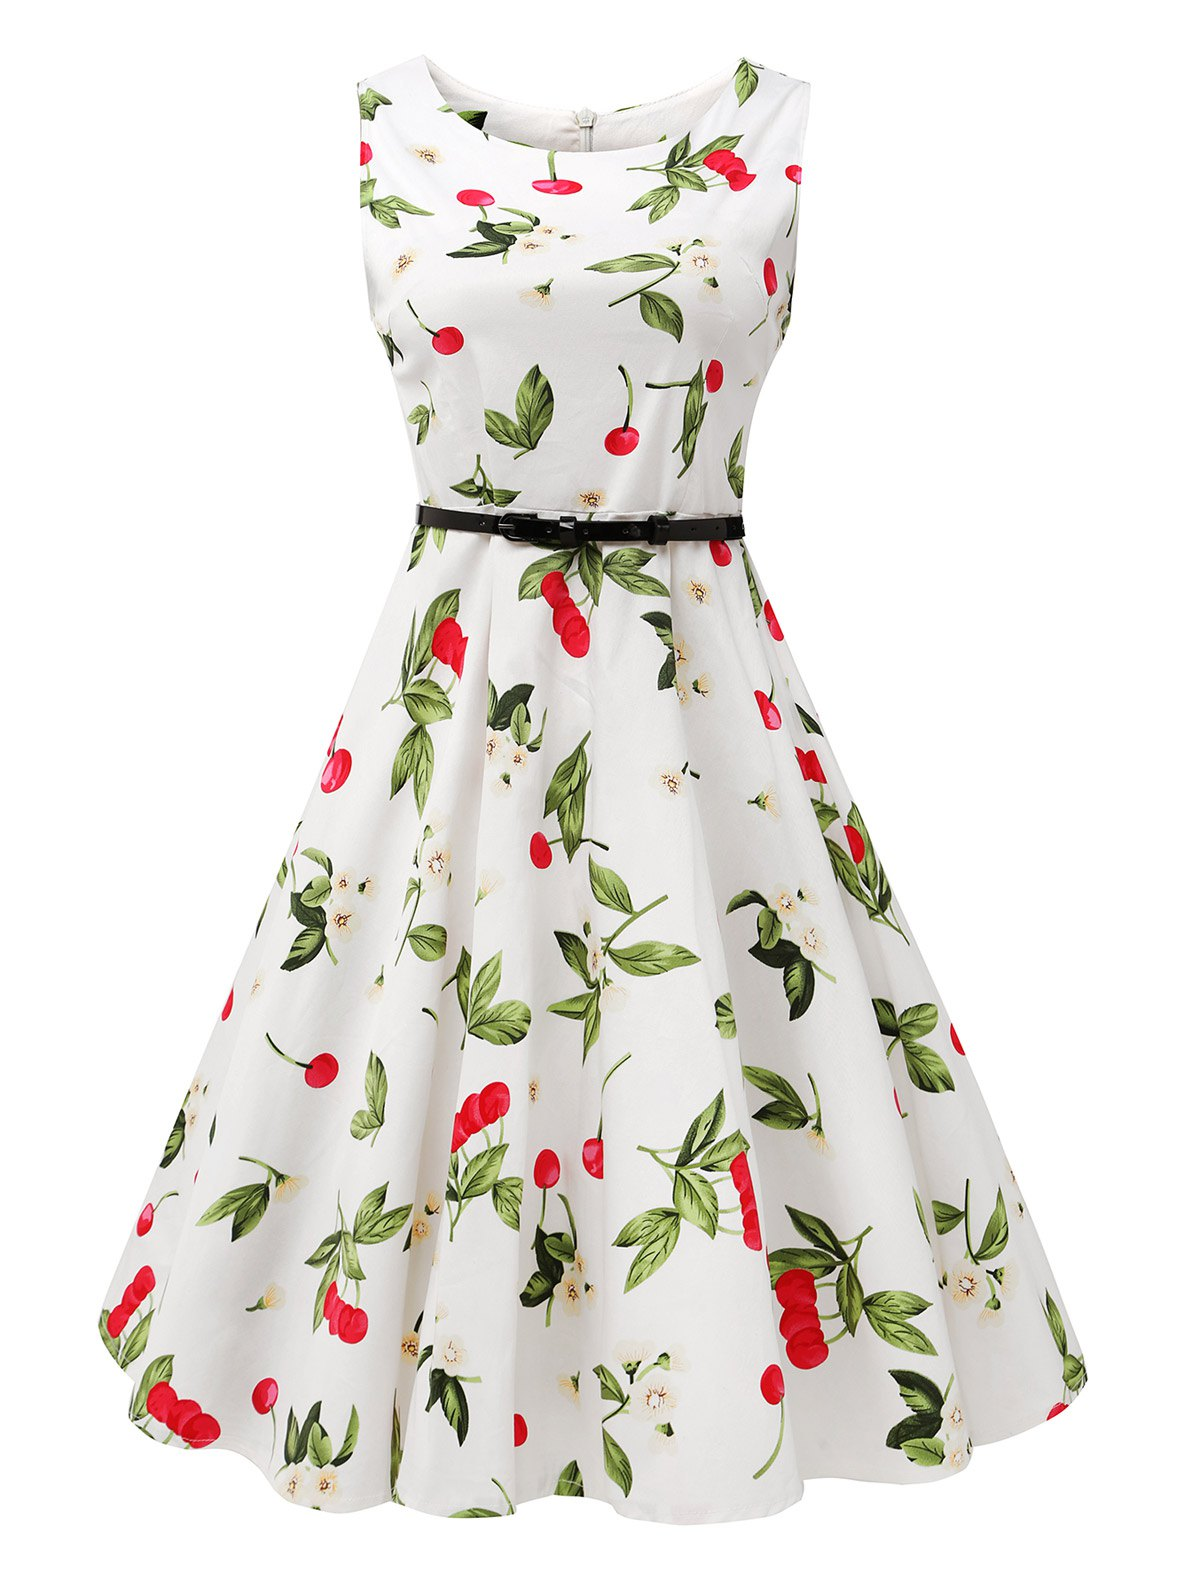 Sleeveless Cherry Print Belted Flare Dress - COLORMIX 2XL